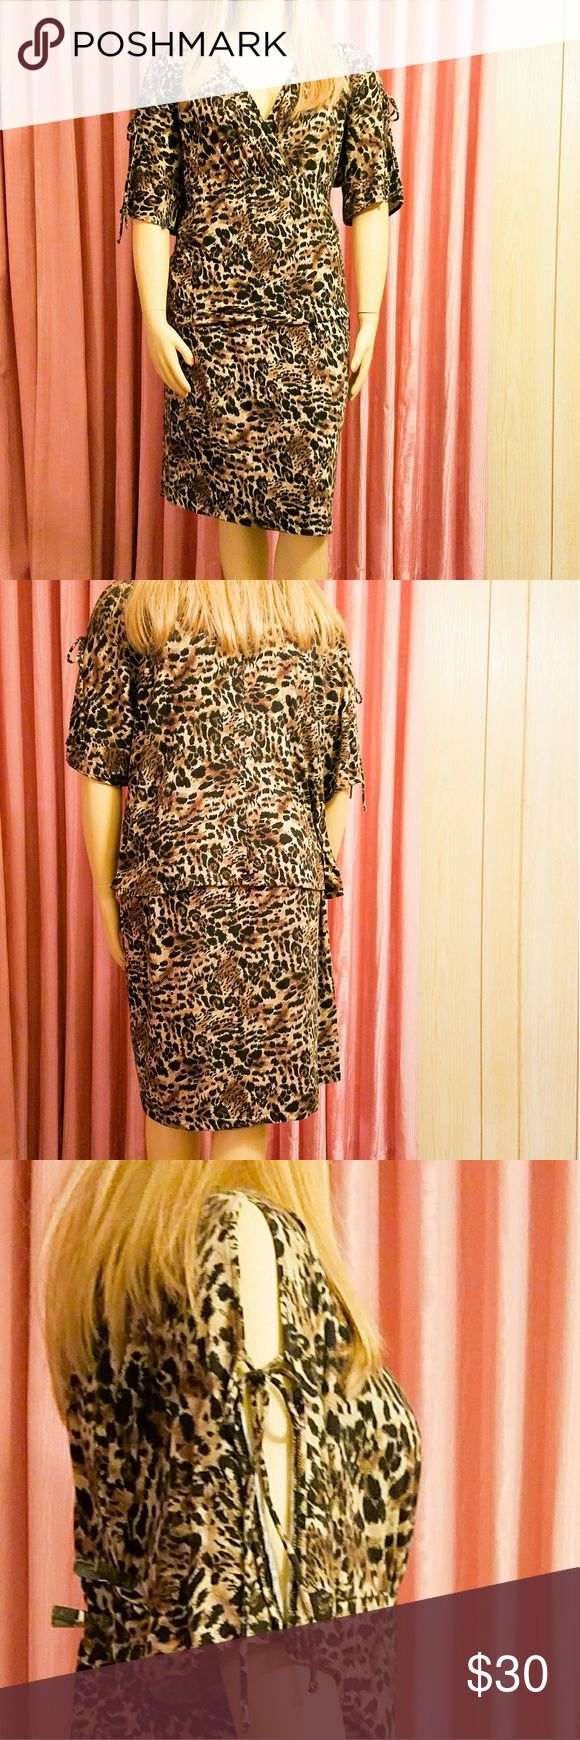 Plus size animal print two piece set in 18/20 Venezia  jeans brand SOFT animal print top with split sleeves in size 18/20 and a straight ,kirt with an elastic waistband. Very comfortable.  Sold as a set only.  Price firm. (Dress was pinned to fit model) Venezia Dresses